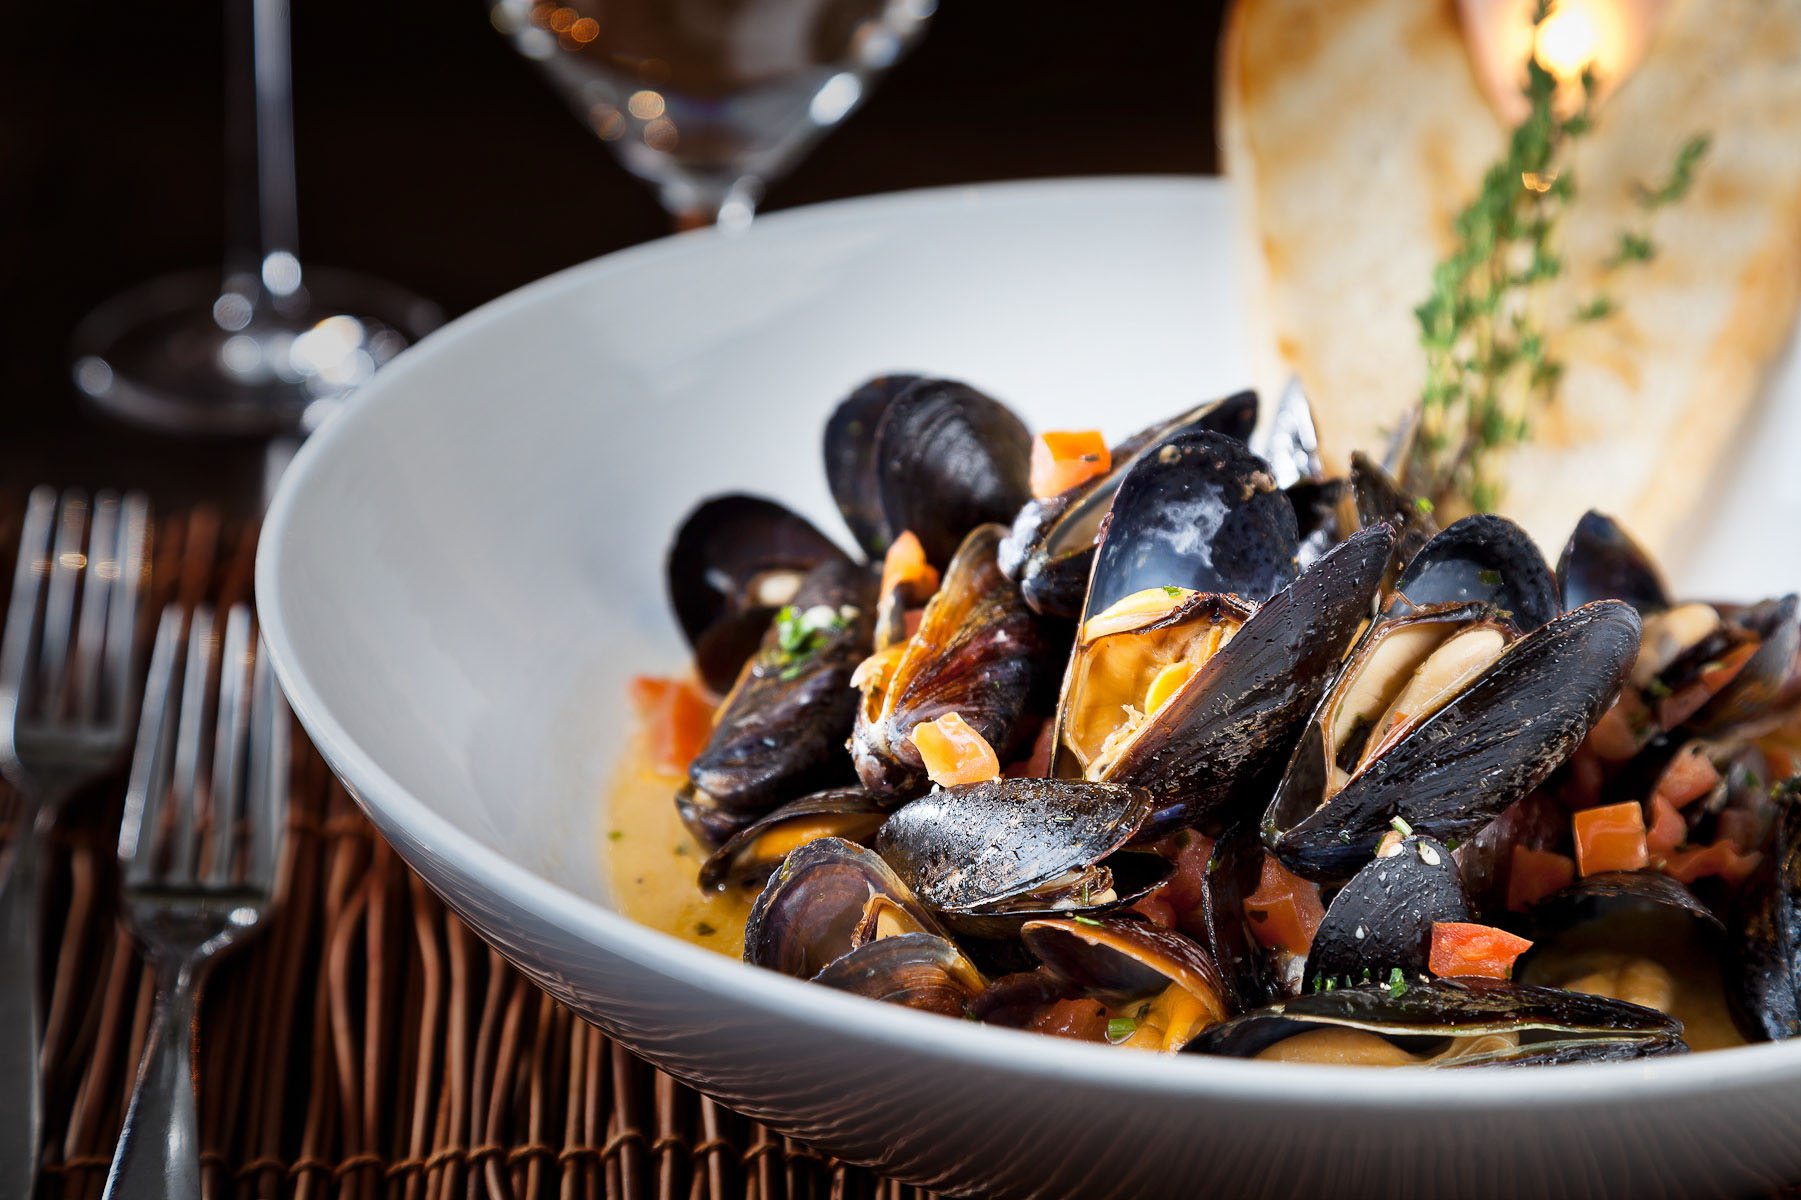 Food photo of Chef Todd Adkins' Mussels at Hideaway Steakhouse in Westminster, CO